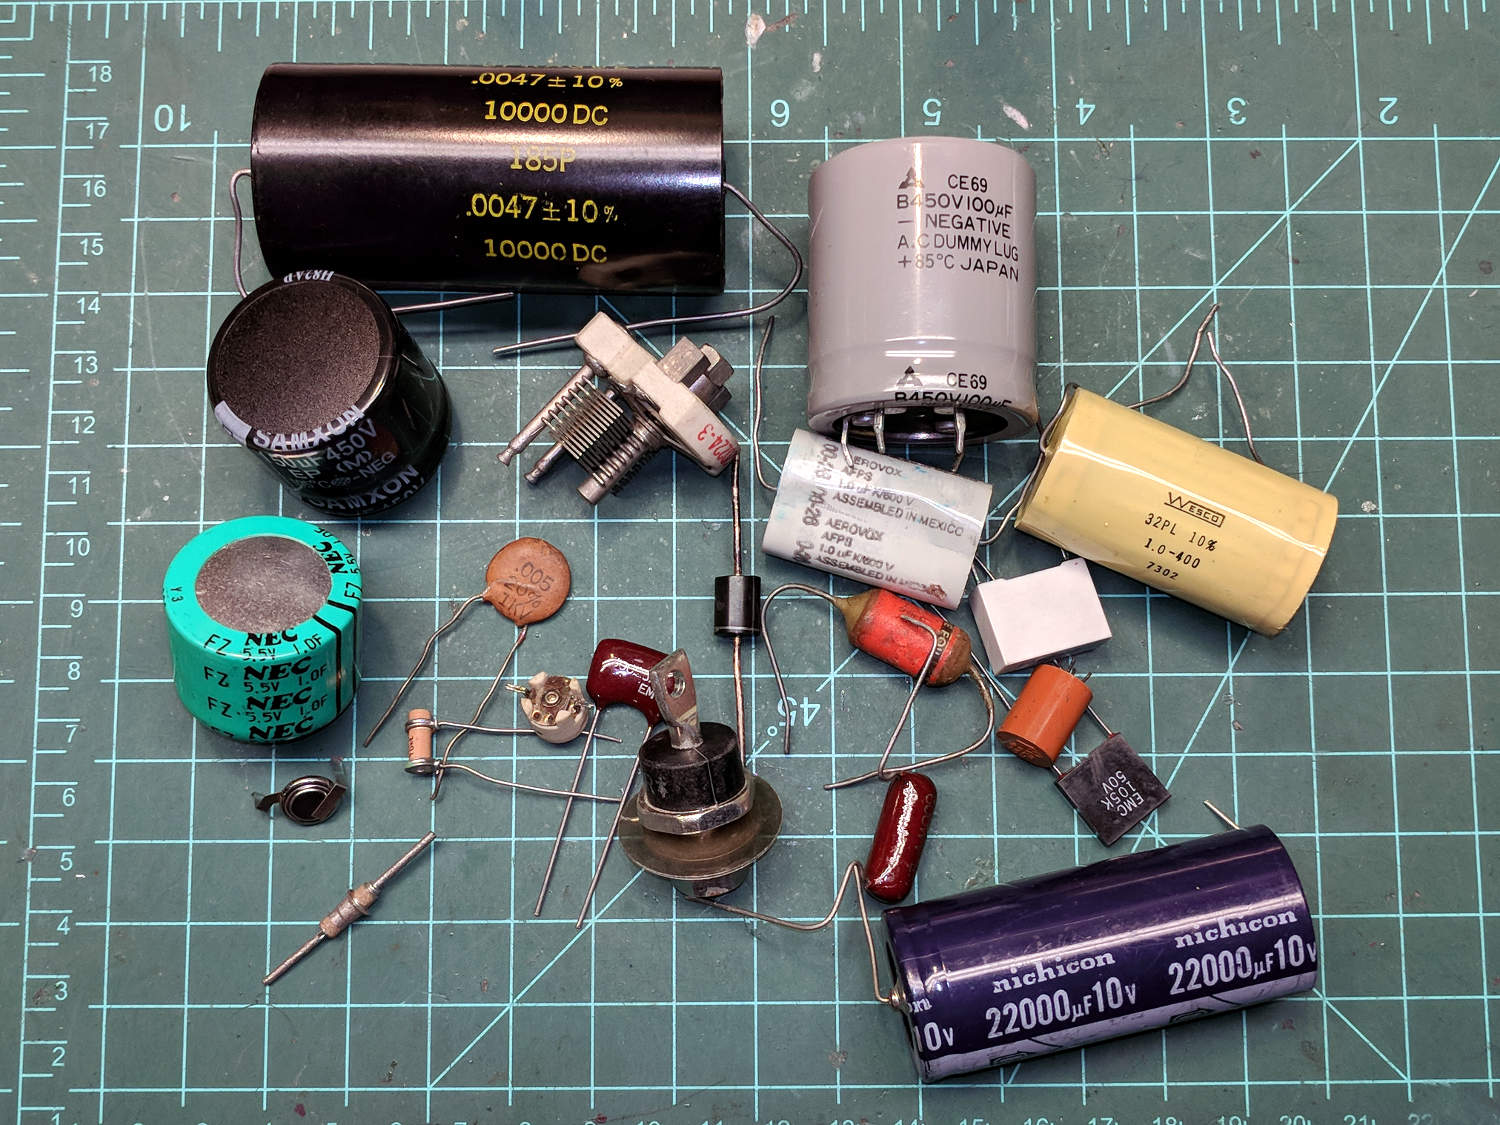 Squidwrench Electronics Workshop Search Results The Smell Of Regulator 33v 1a With Pnp Transistor Electronic Projects Circuits Capacitor Show N Tell